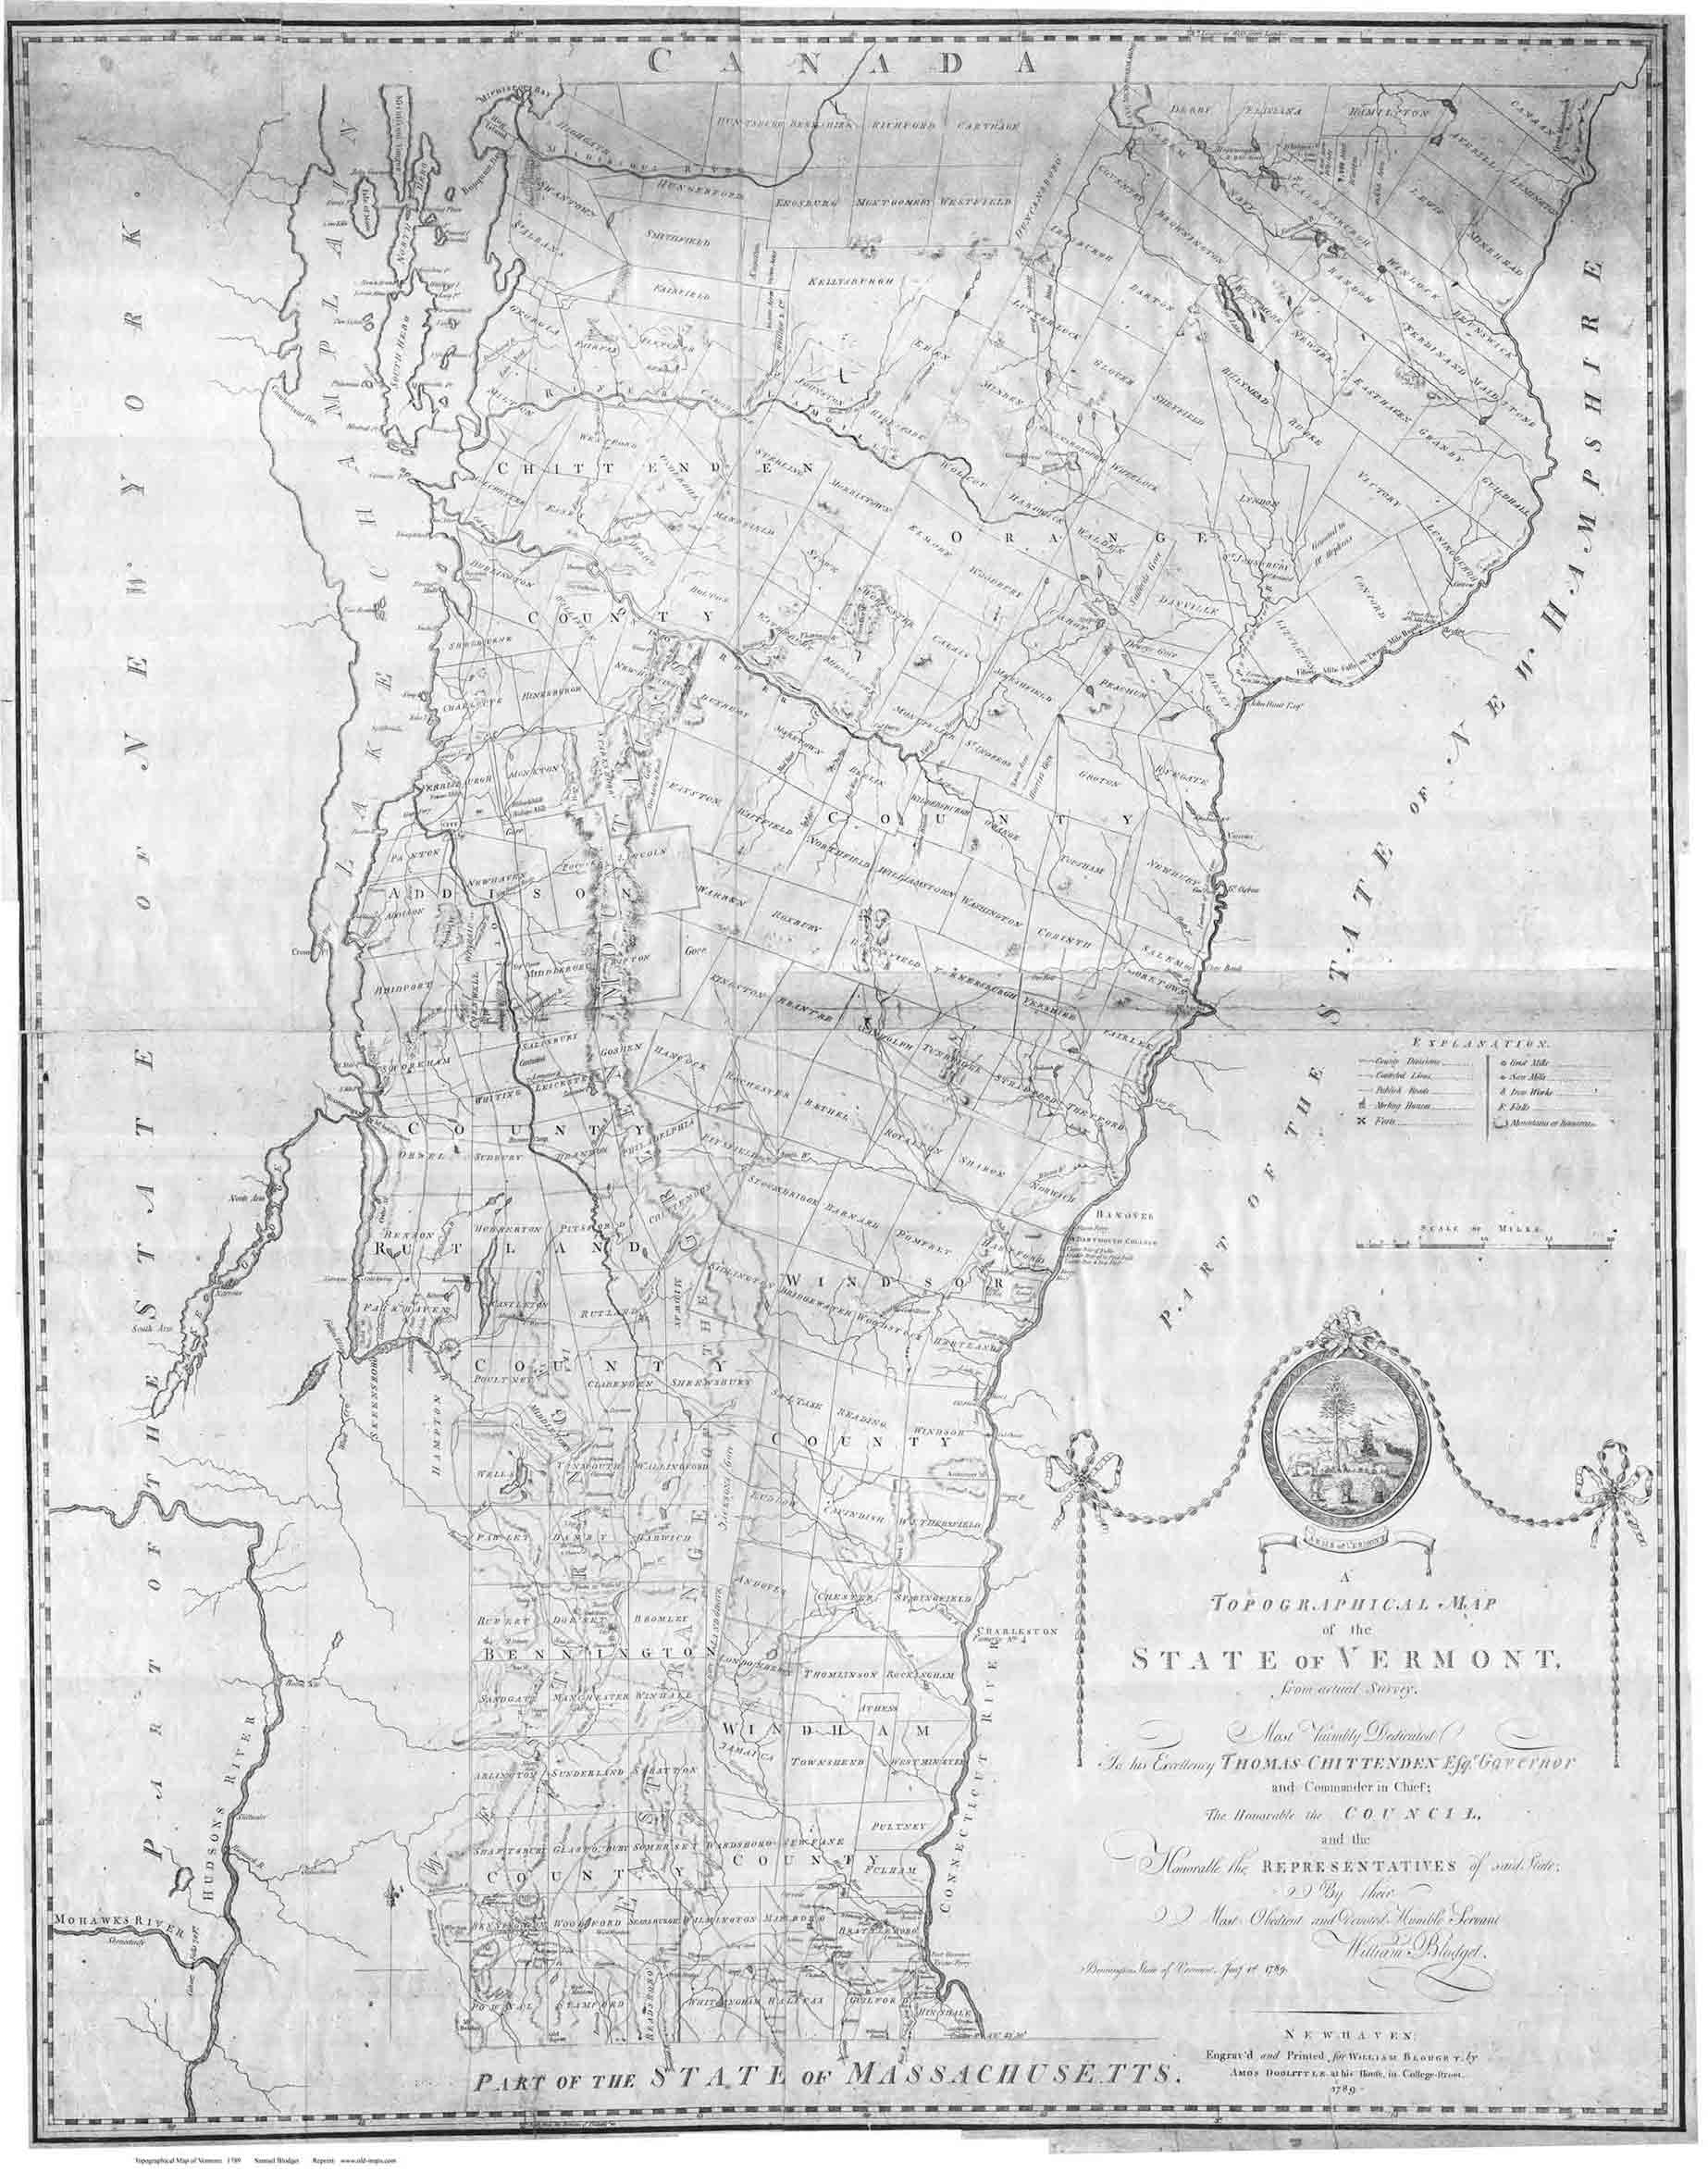 Blodget\'s Map of Vermont, 1789